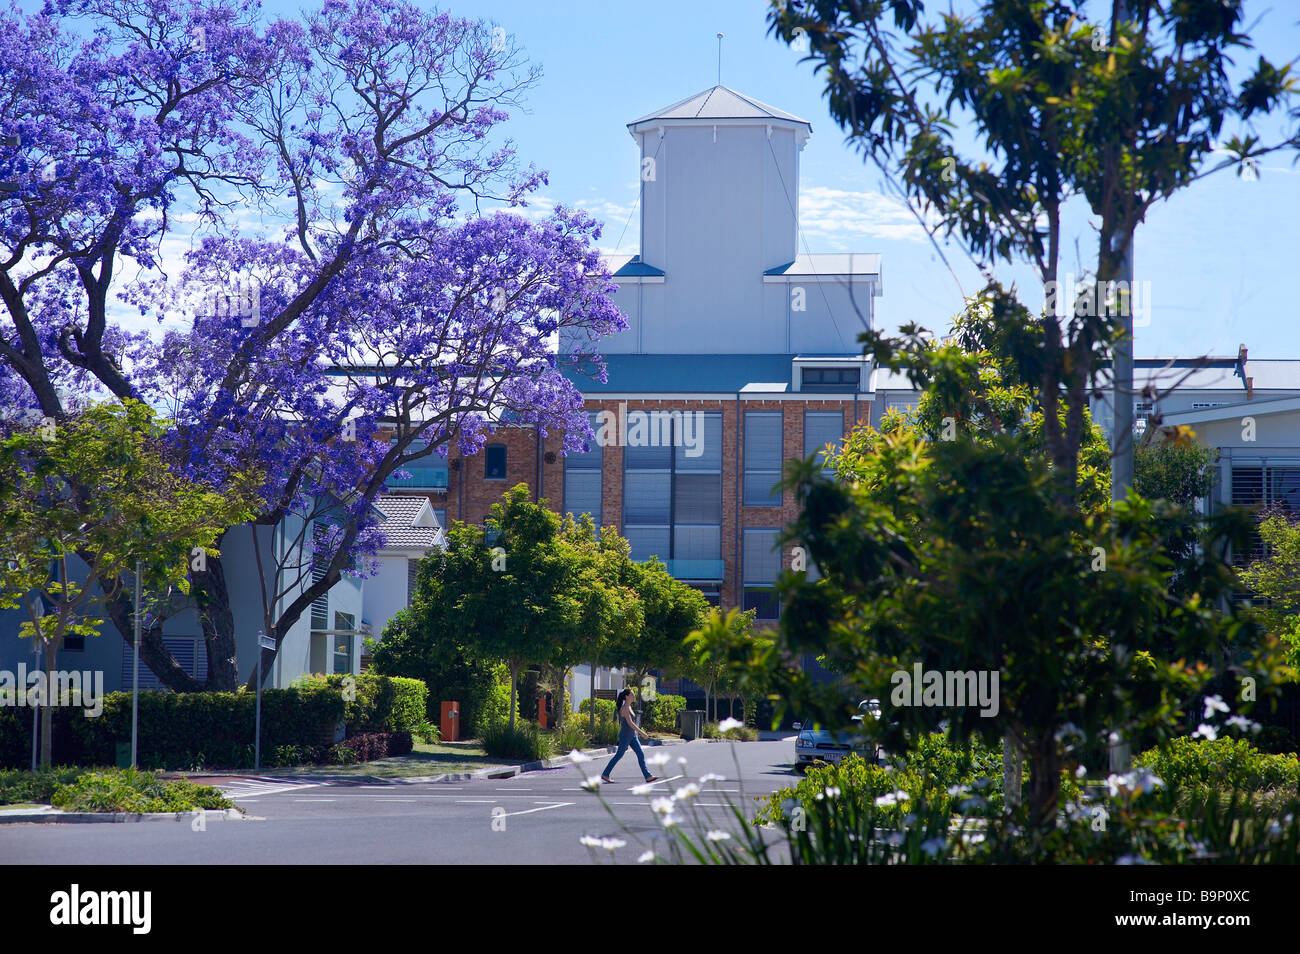 Sugar Refinery Apartments Brisbane Australia - Stock Image